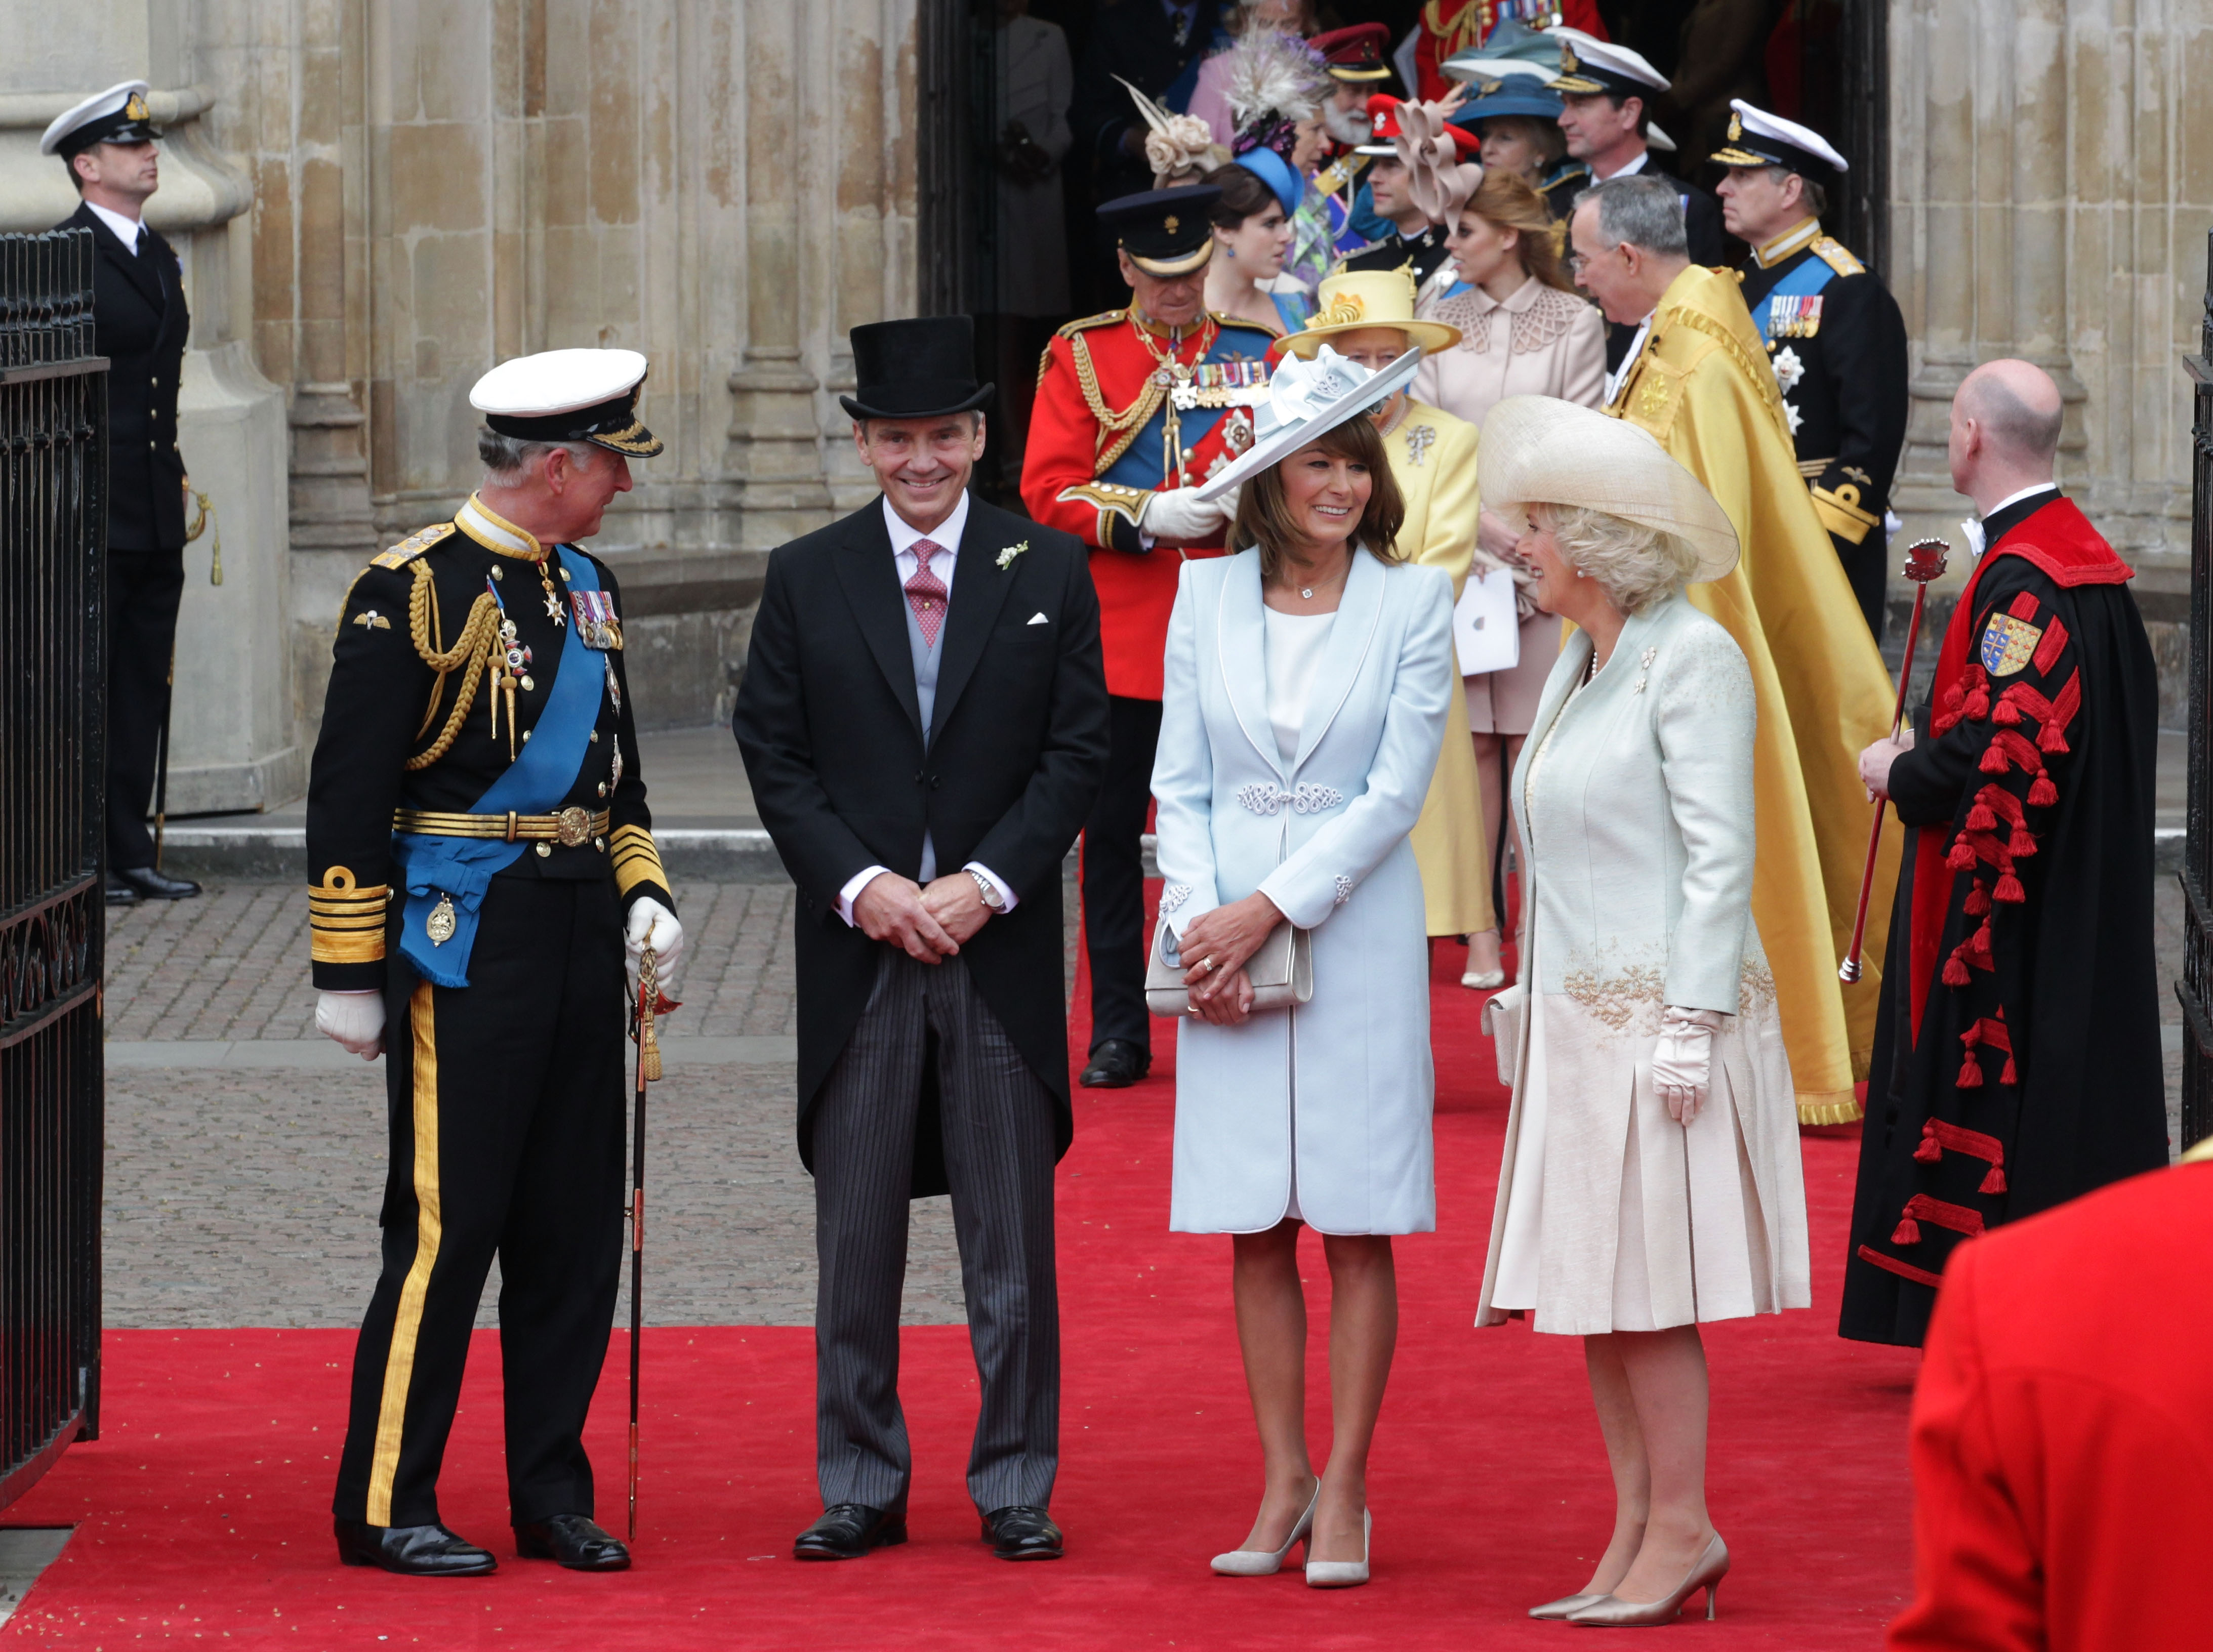 Prince Charles and Camilla with Kate's parents, Michael and Carole Middleton